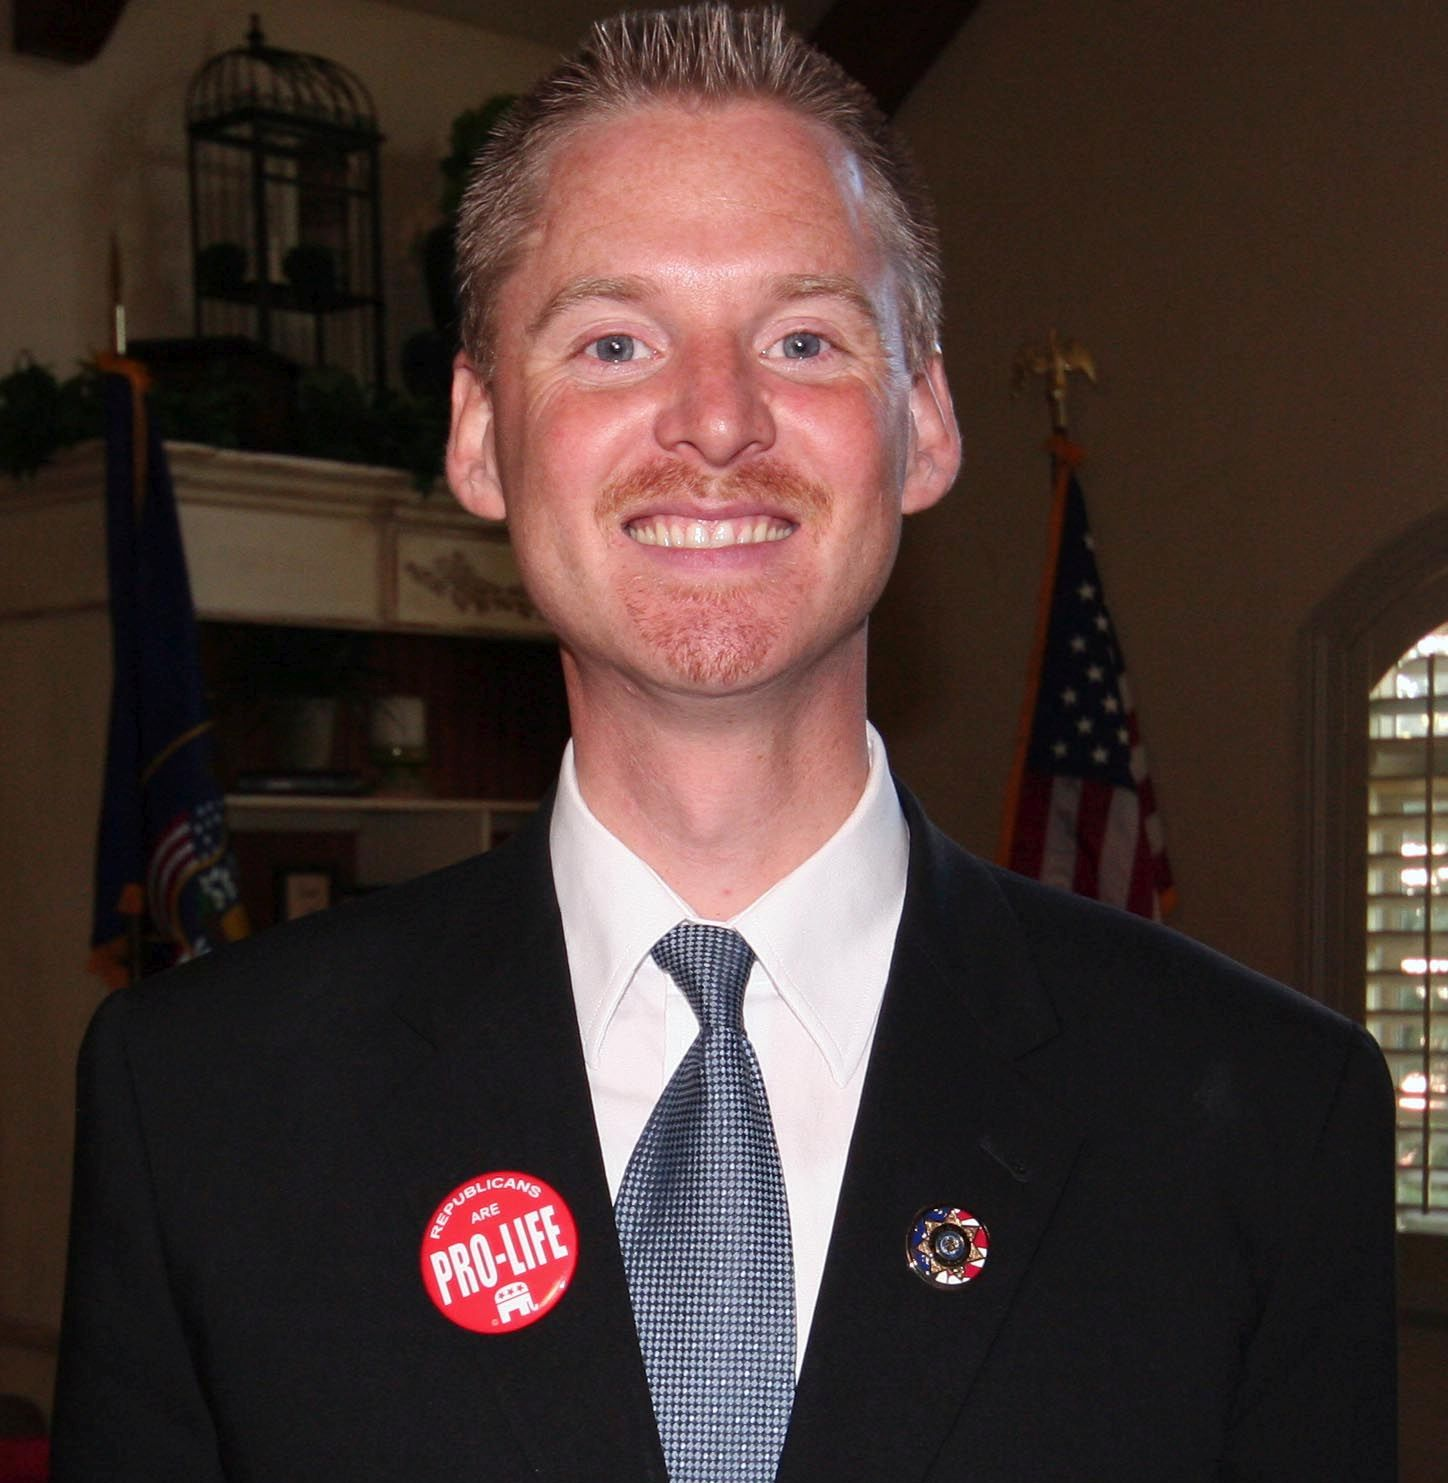 American Independent candidate for governor Superdell Schanze, undated. | Photo courtesy of utah.gov website, St. George News